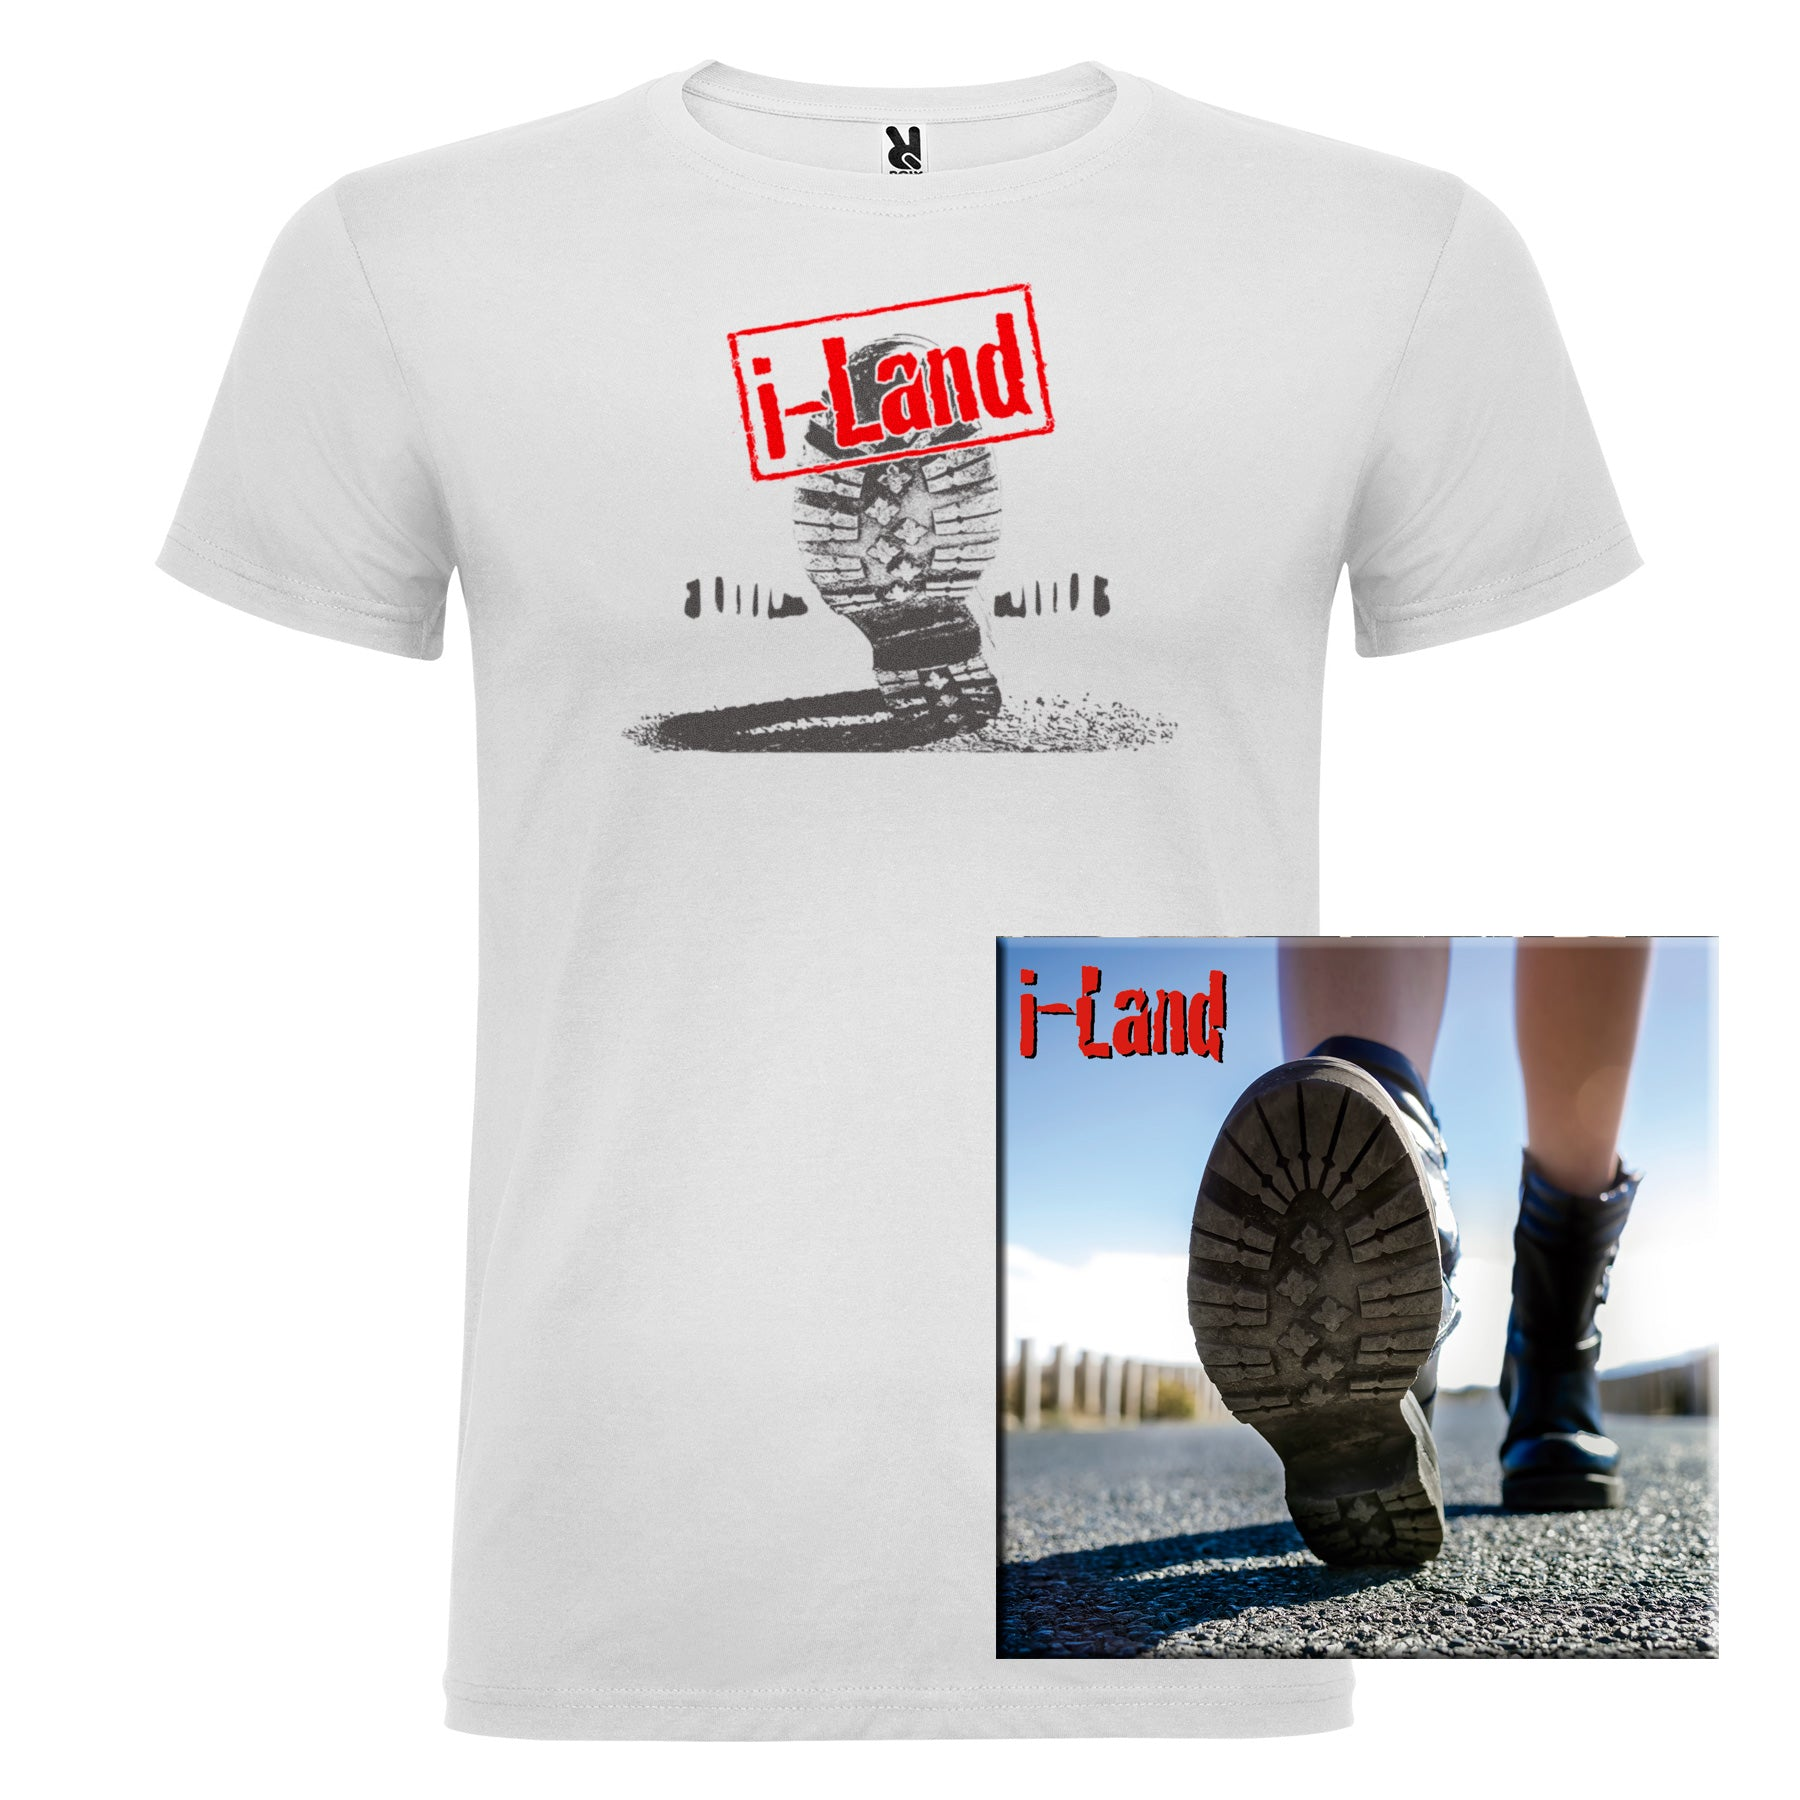 i-Land - CD + Camiseta Chico - Merchanfy Imprime tus camisetas